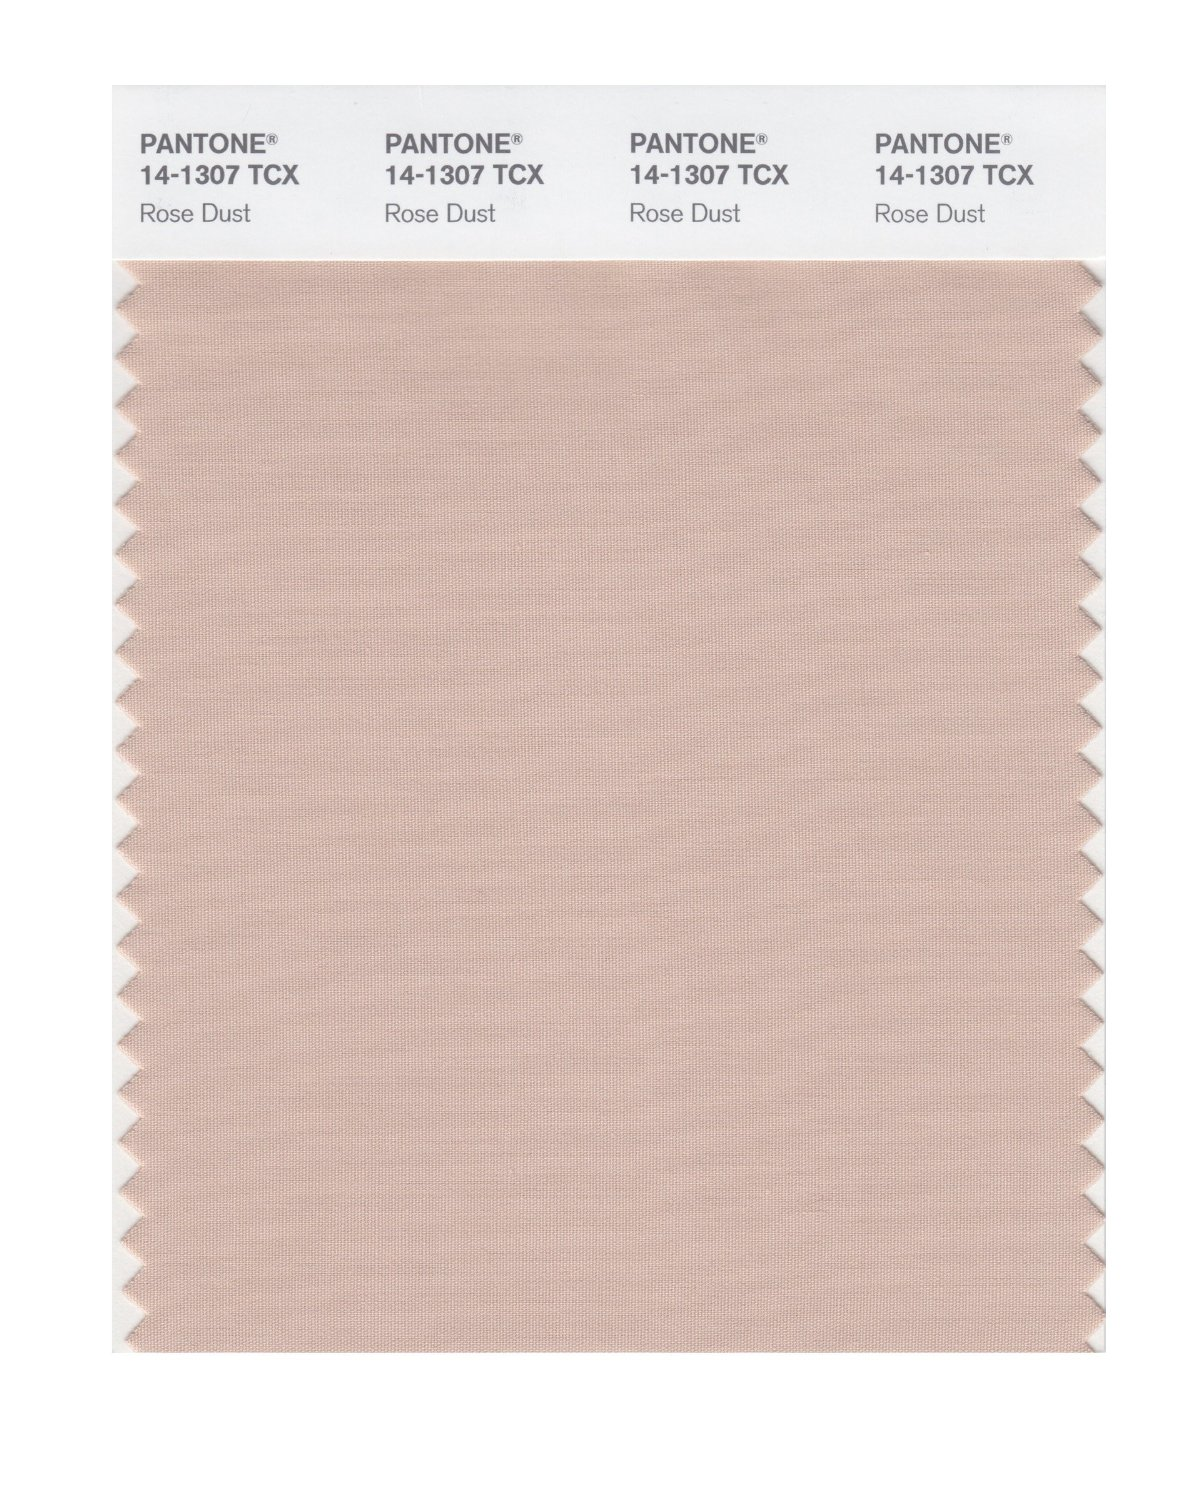 Pantone Smart Swatch 14-1307 Rose Dust